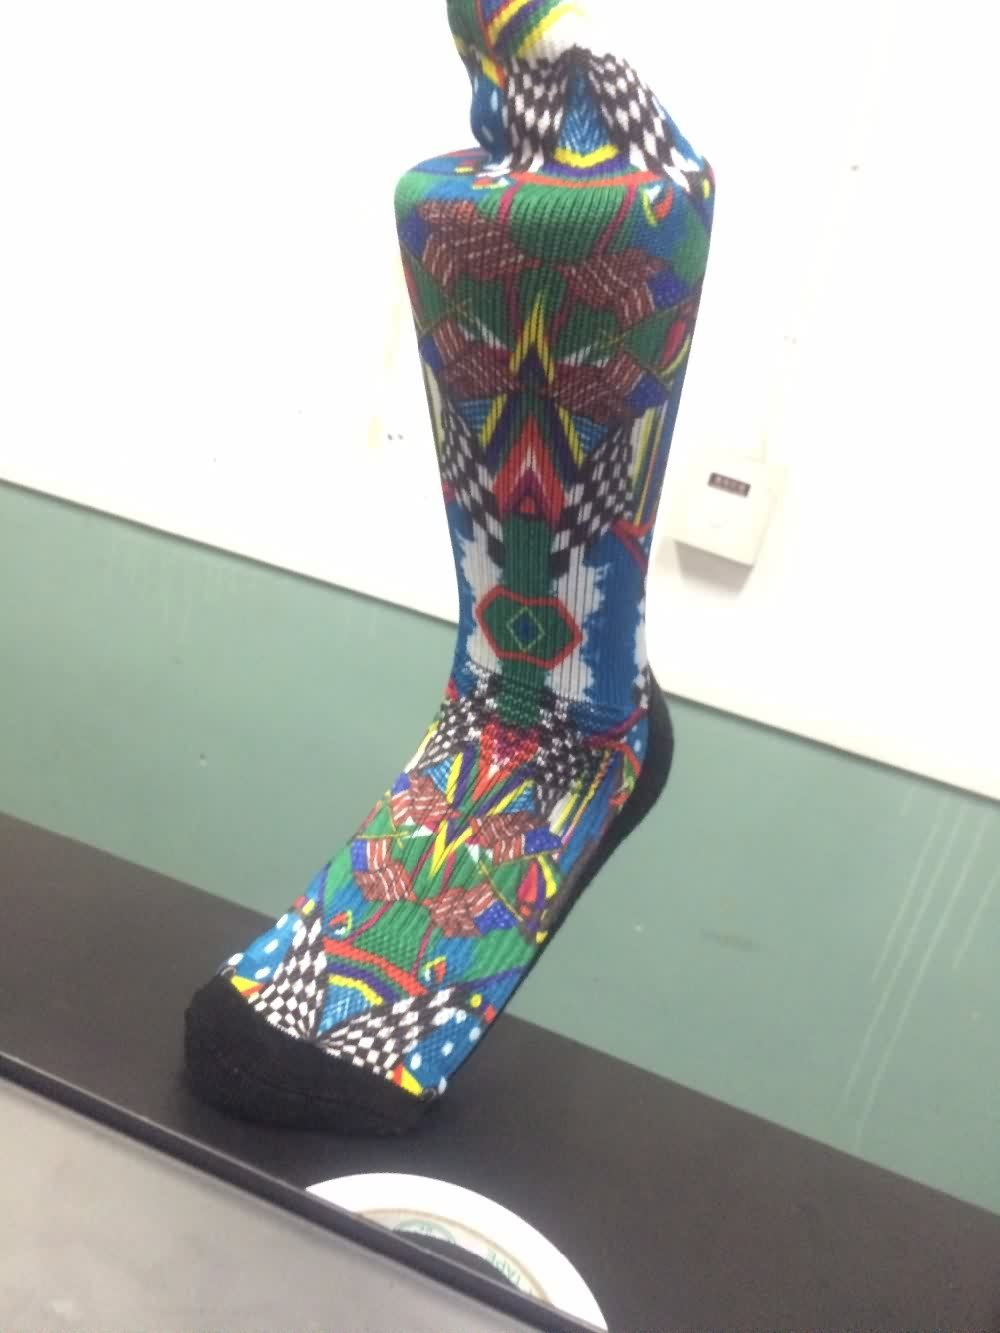 19 Years manufacturer Top quality customise digital printing socks to Rome Factories